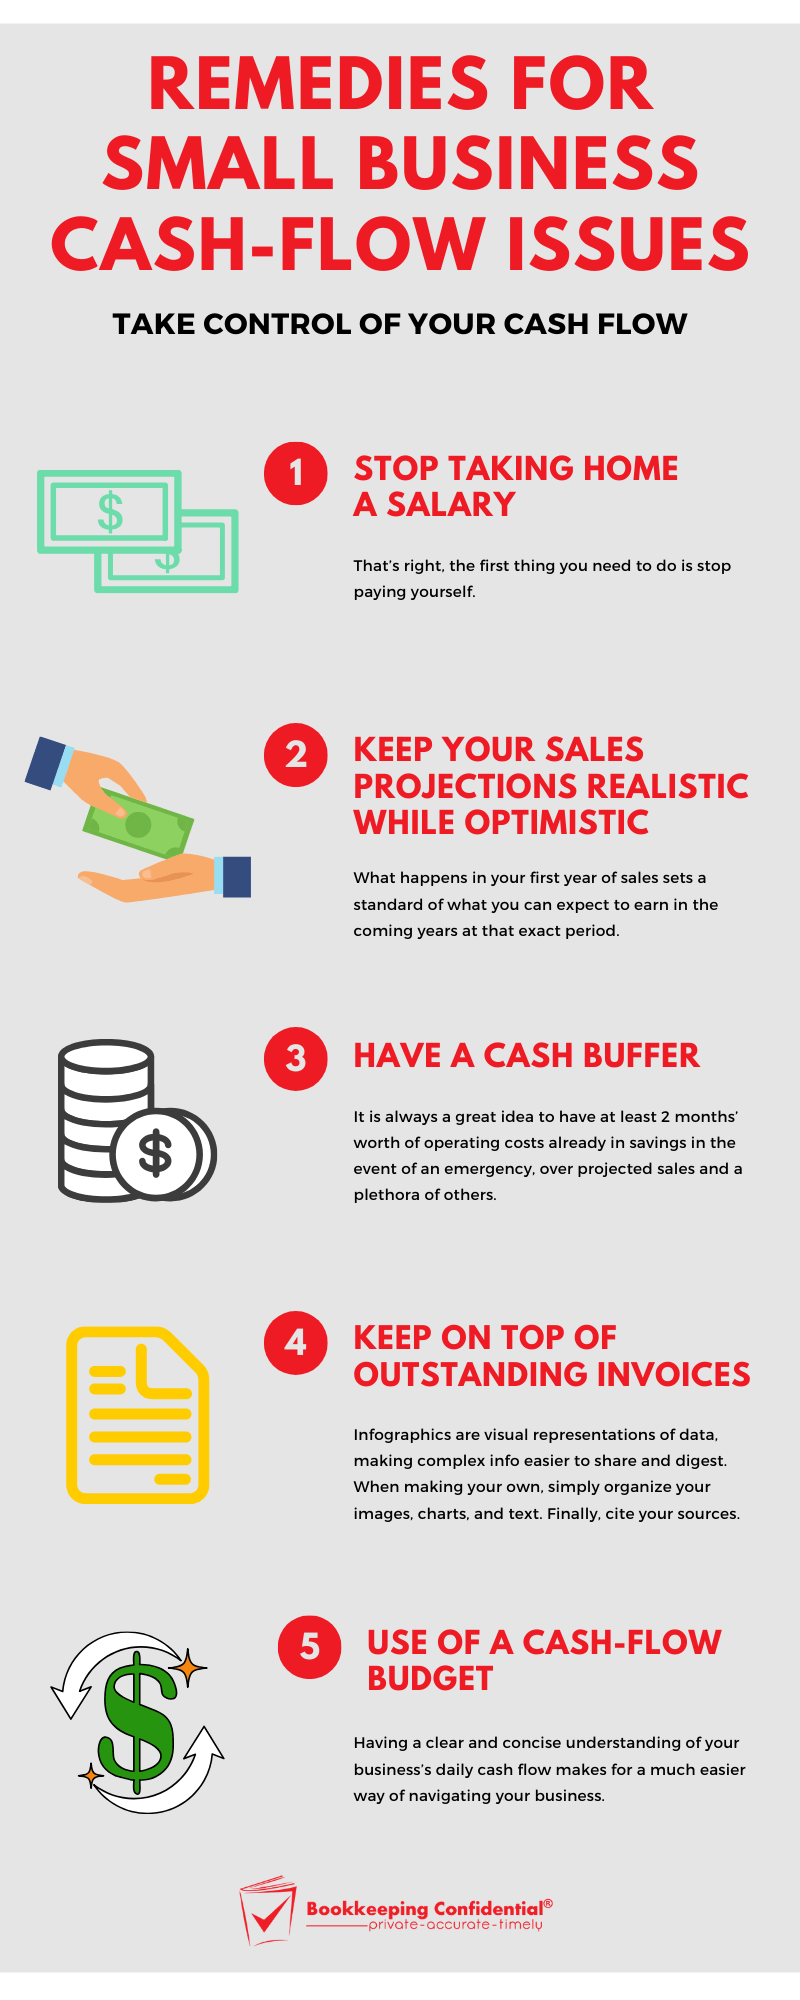 Cash-Flow-Issues_-Top-5-Remedies-For-Businesses